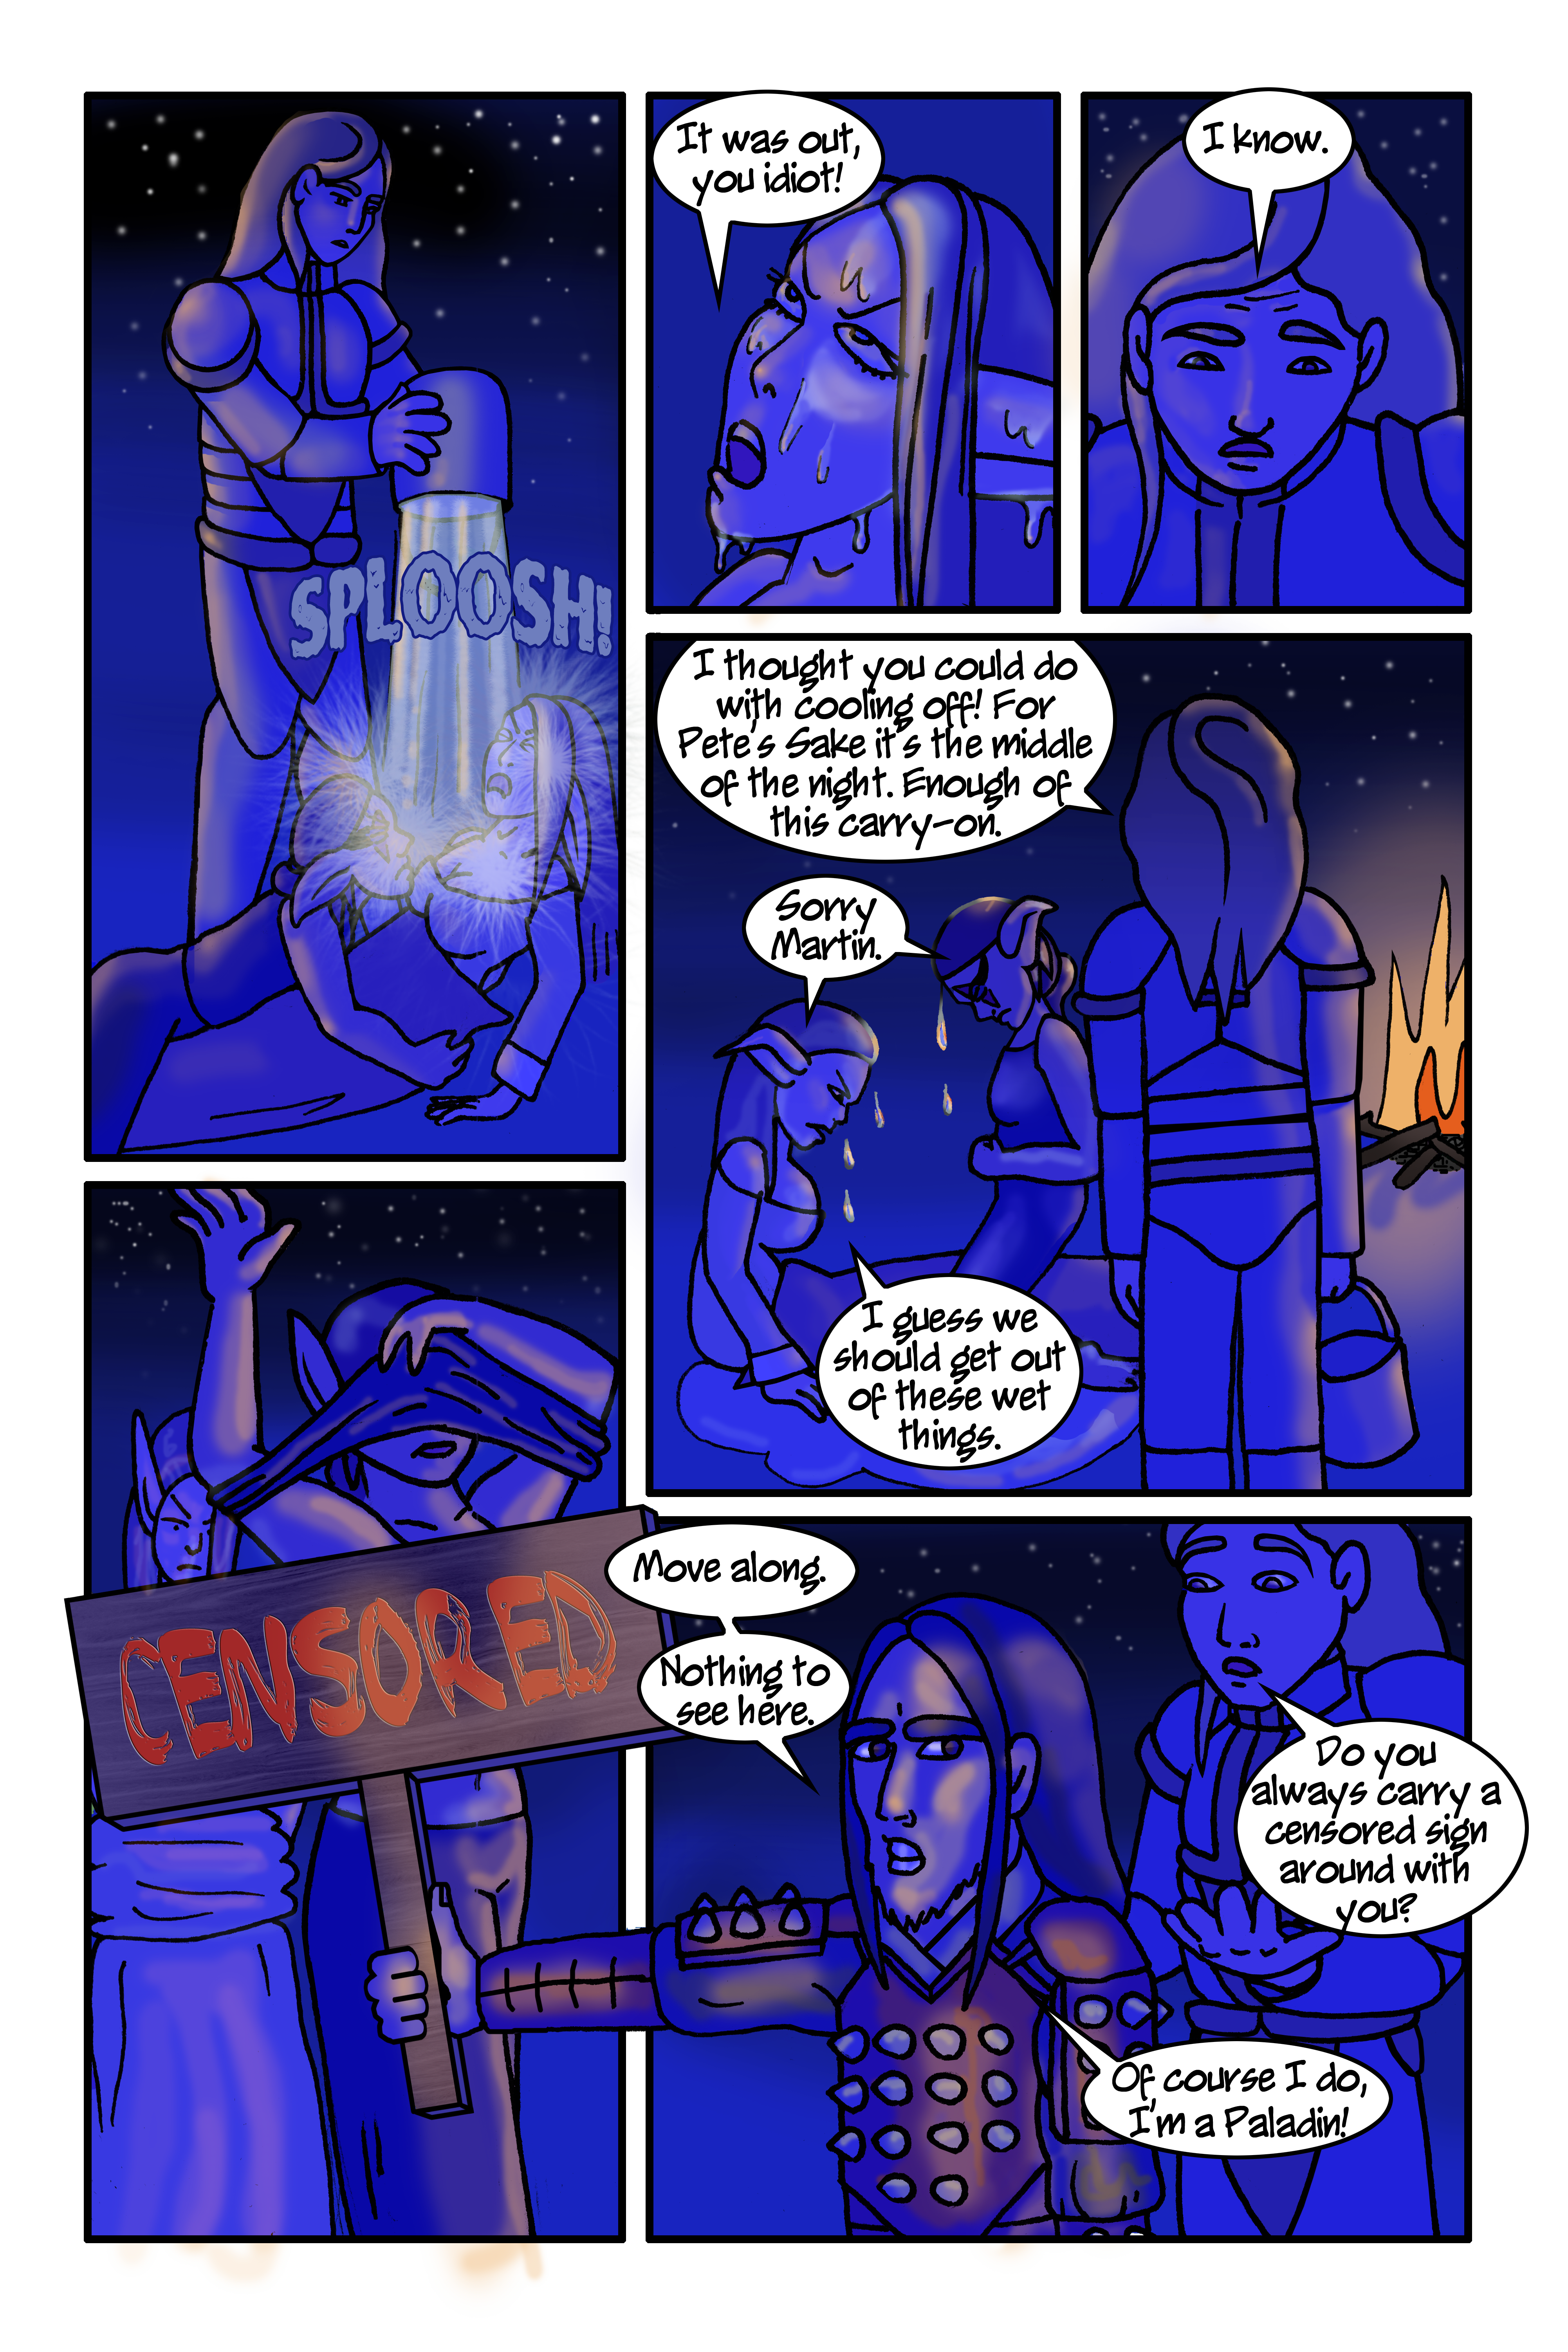 Pg 74: Censorship